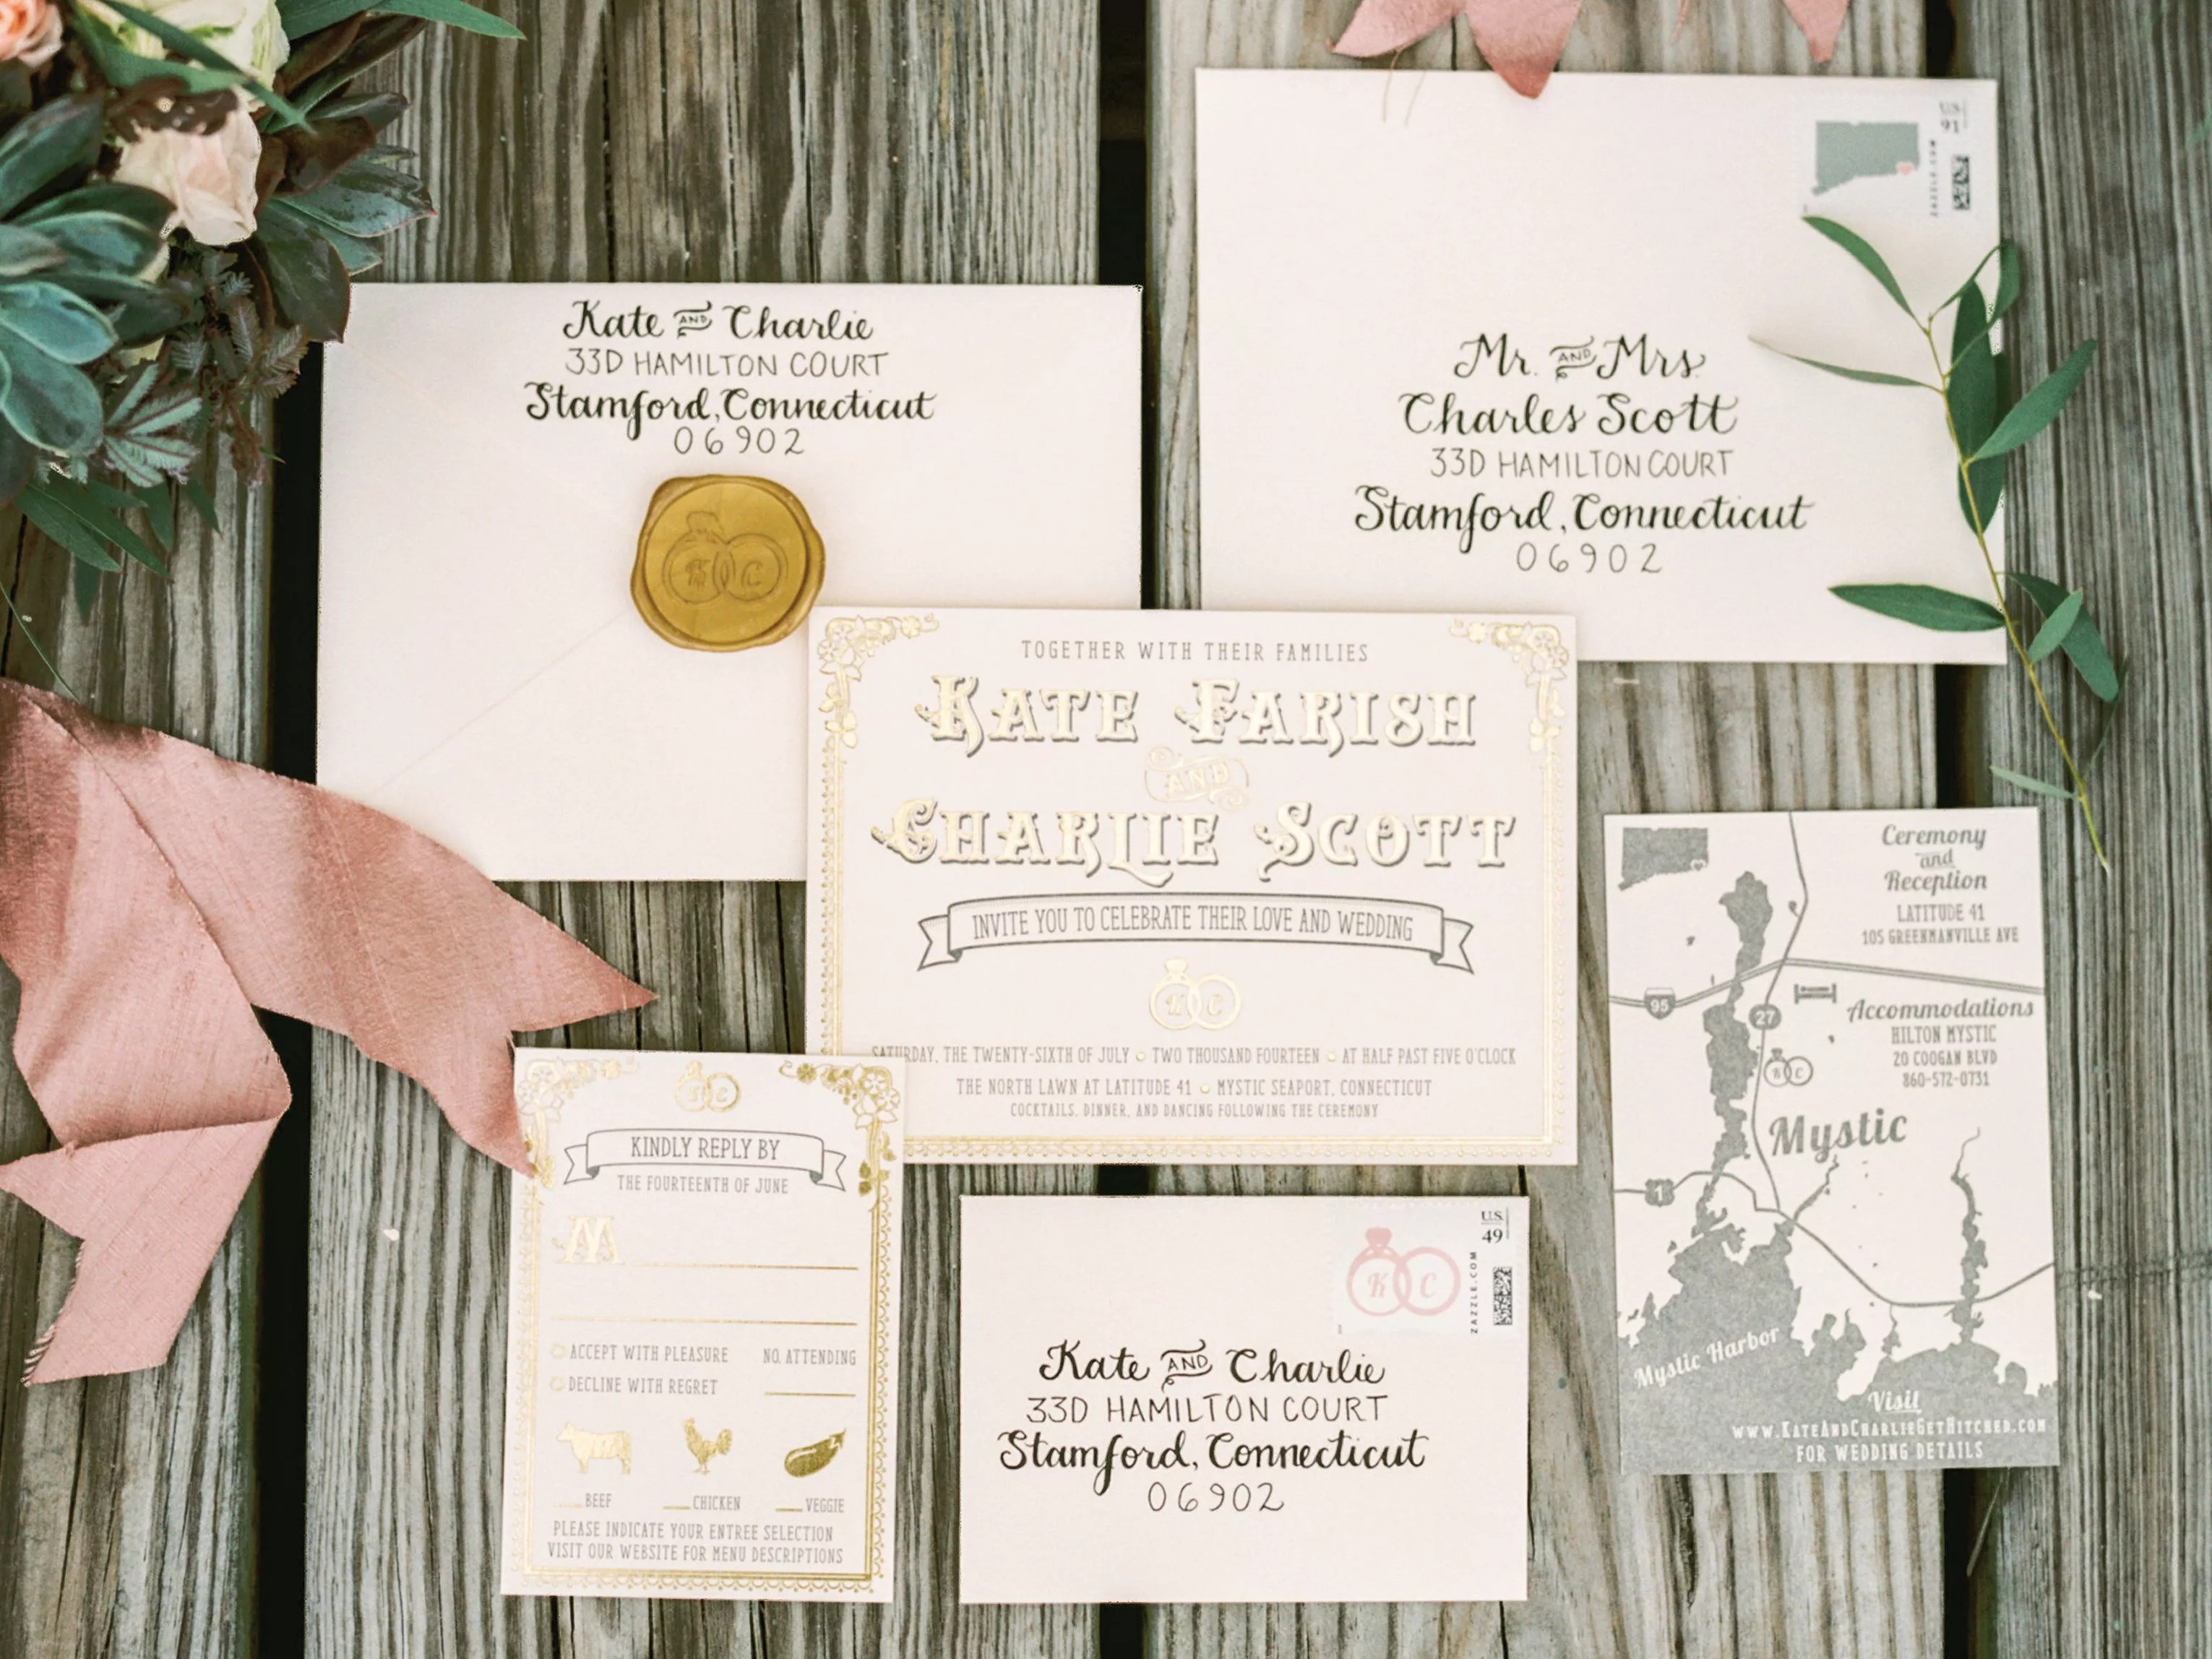 complete wedding invitations checklist wedding invitations with pictures Wedding Invitations A Complete Checklist Wedding Planning Wedding Invitations Stationery